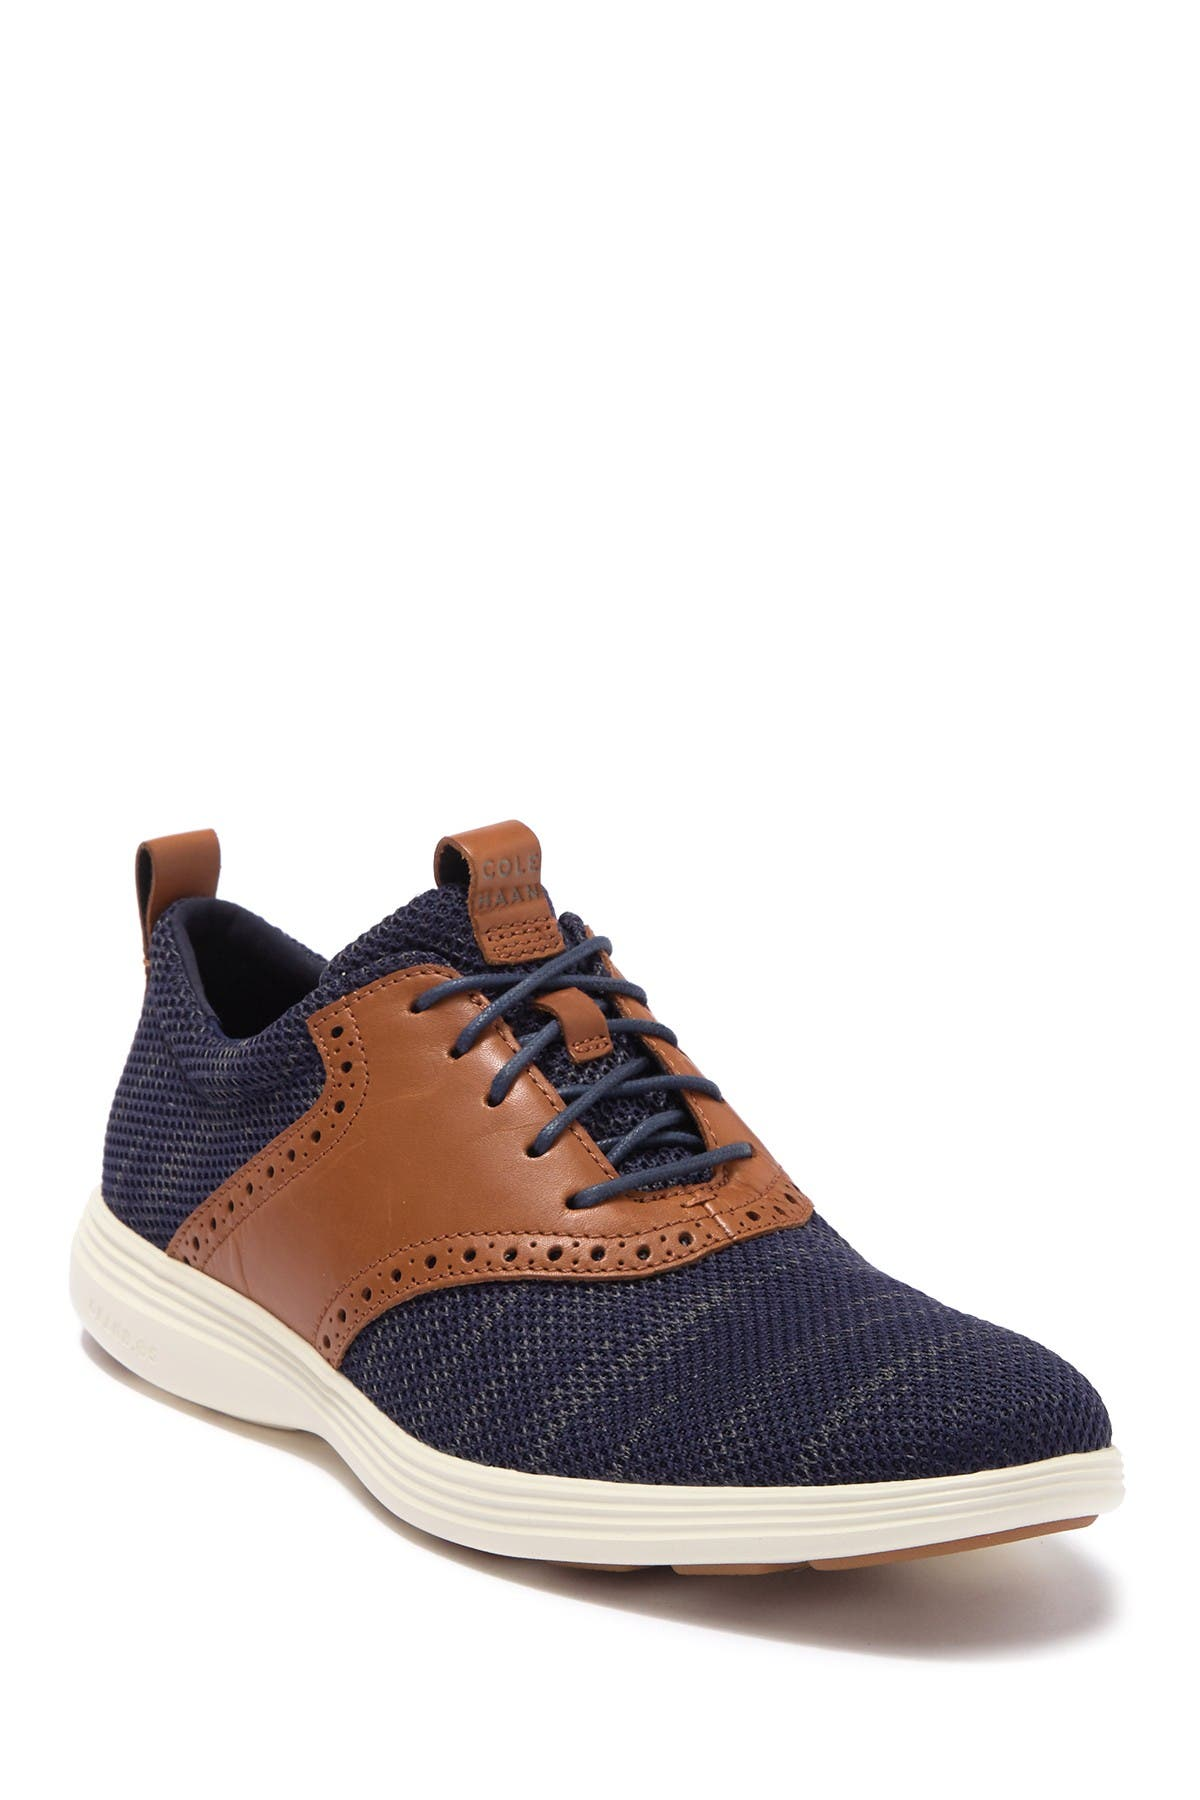 Image of Cole Haan Grand Tour Knit Oxford